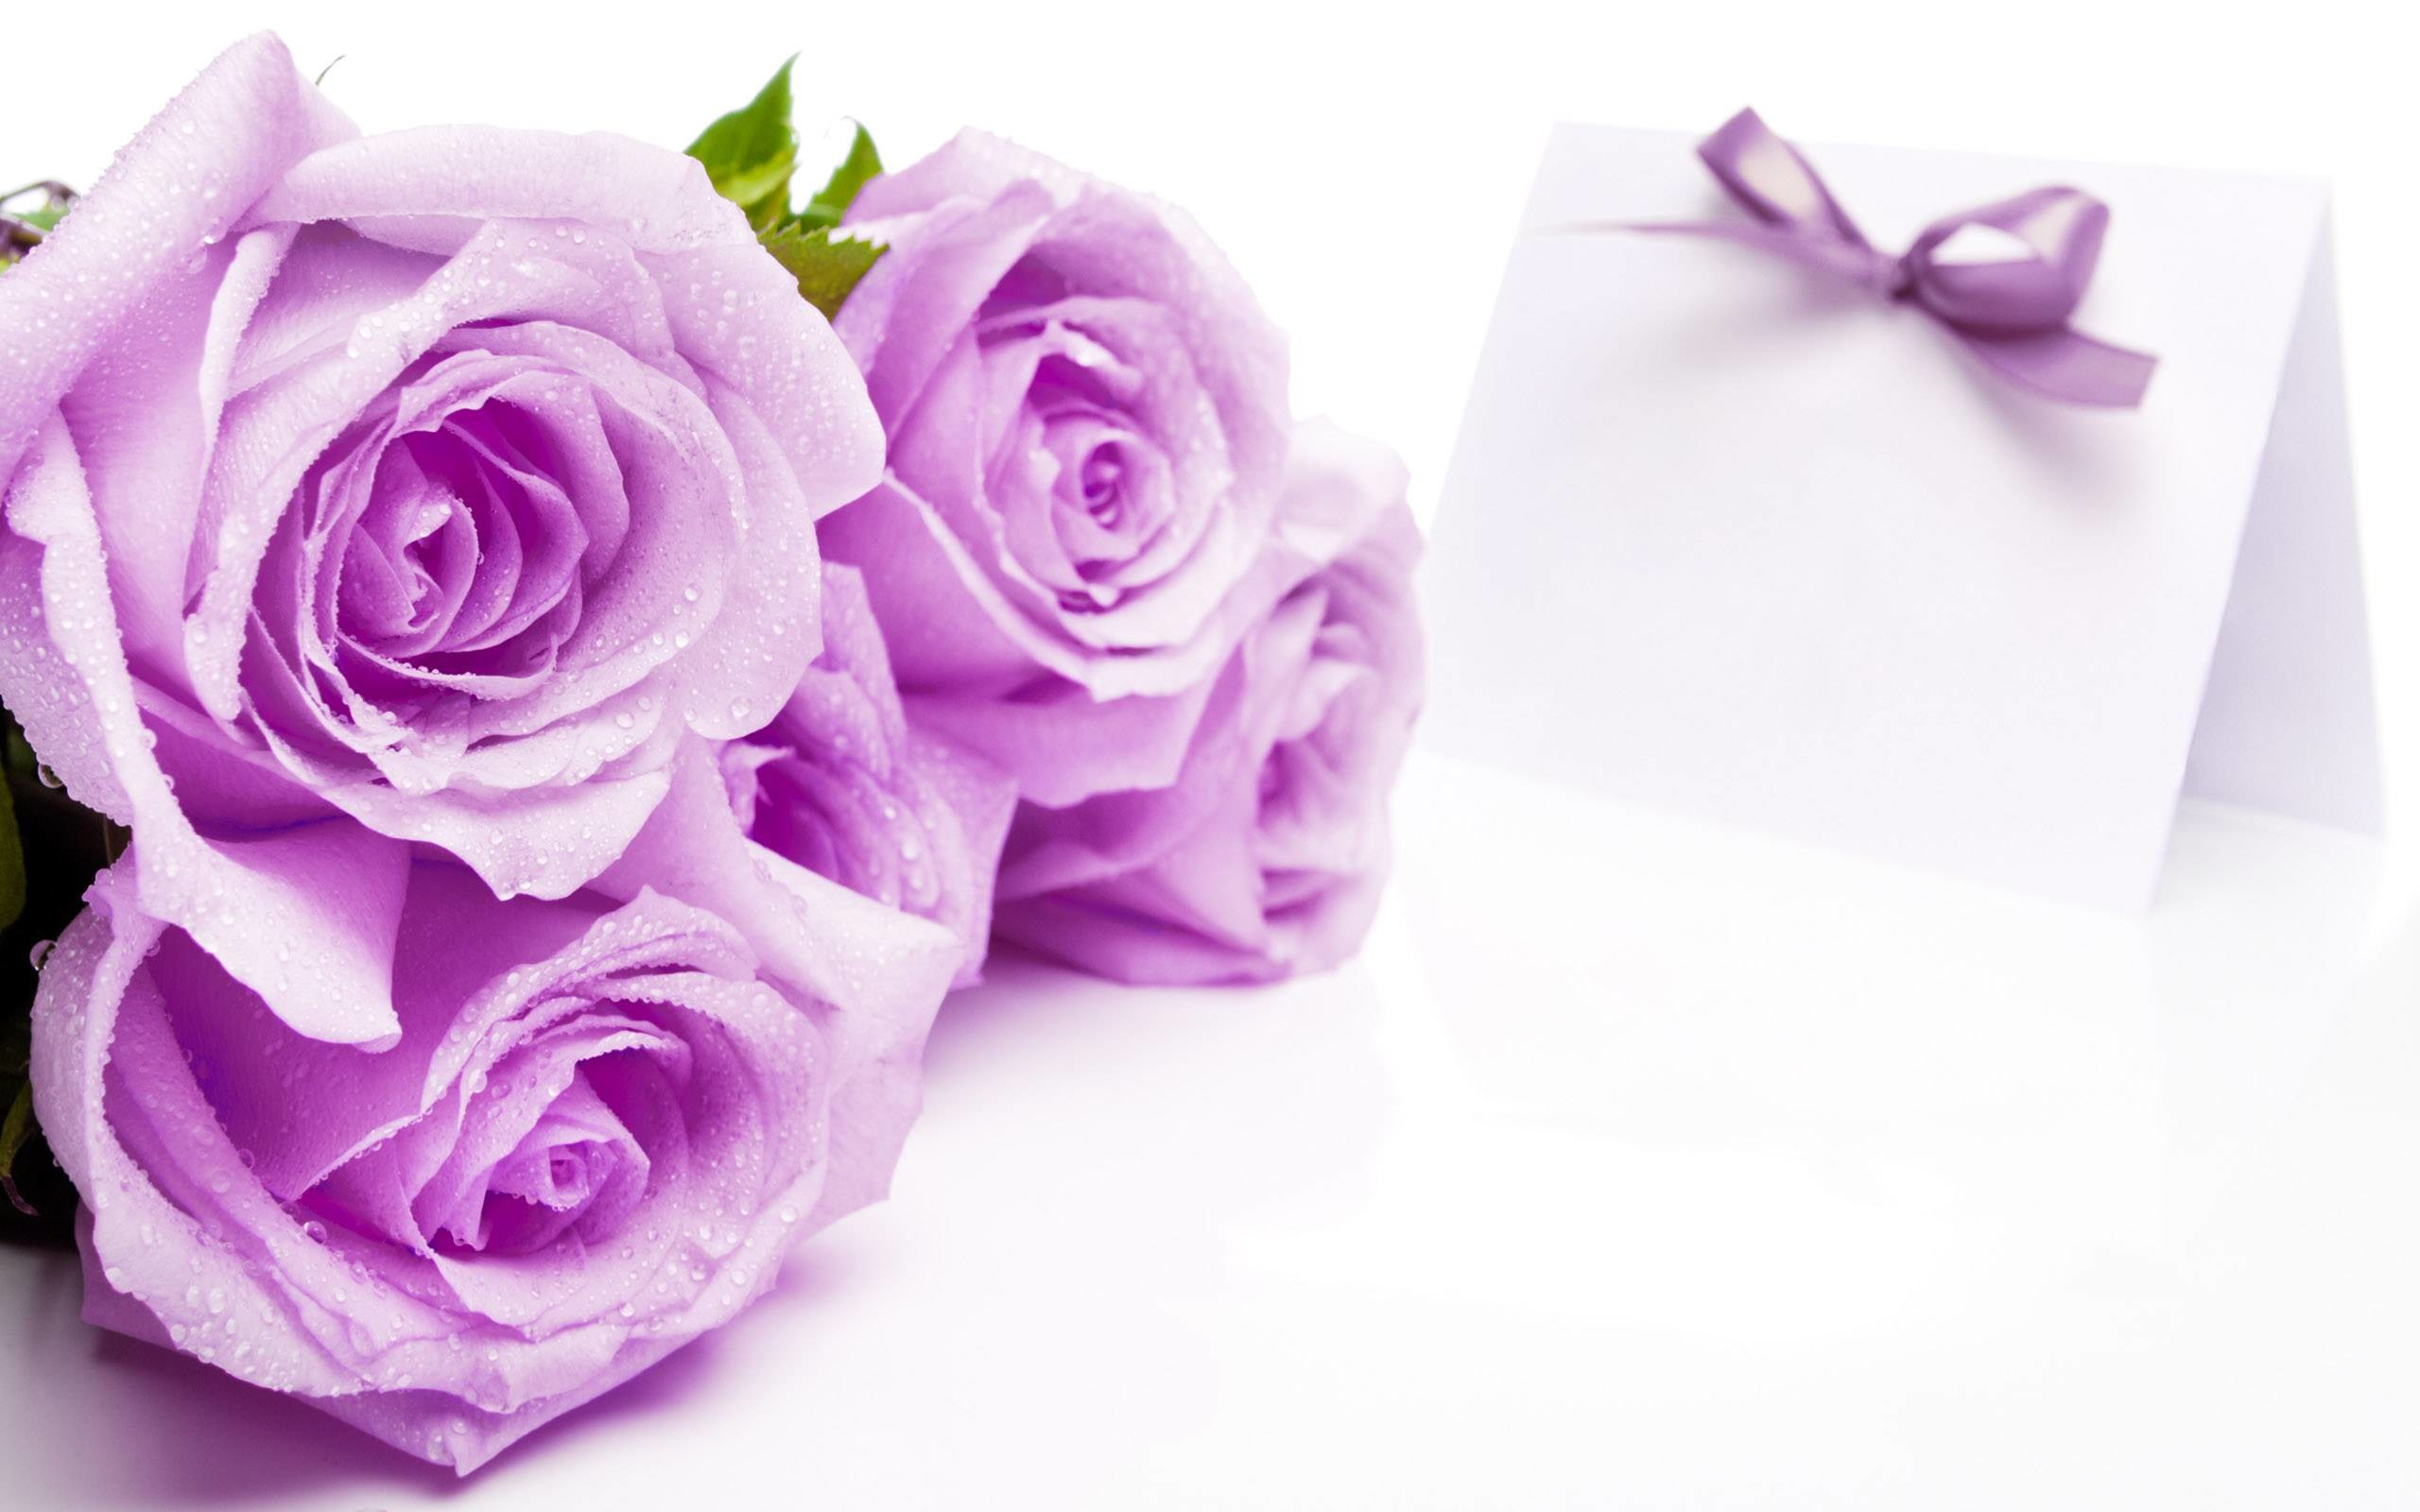 pictures of beautiful flowers wallpapers (56+ images)